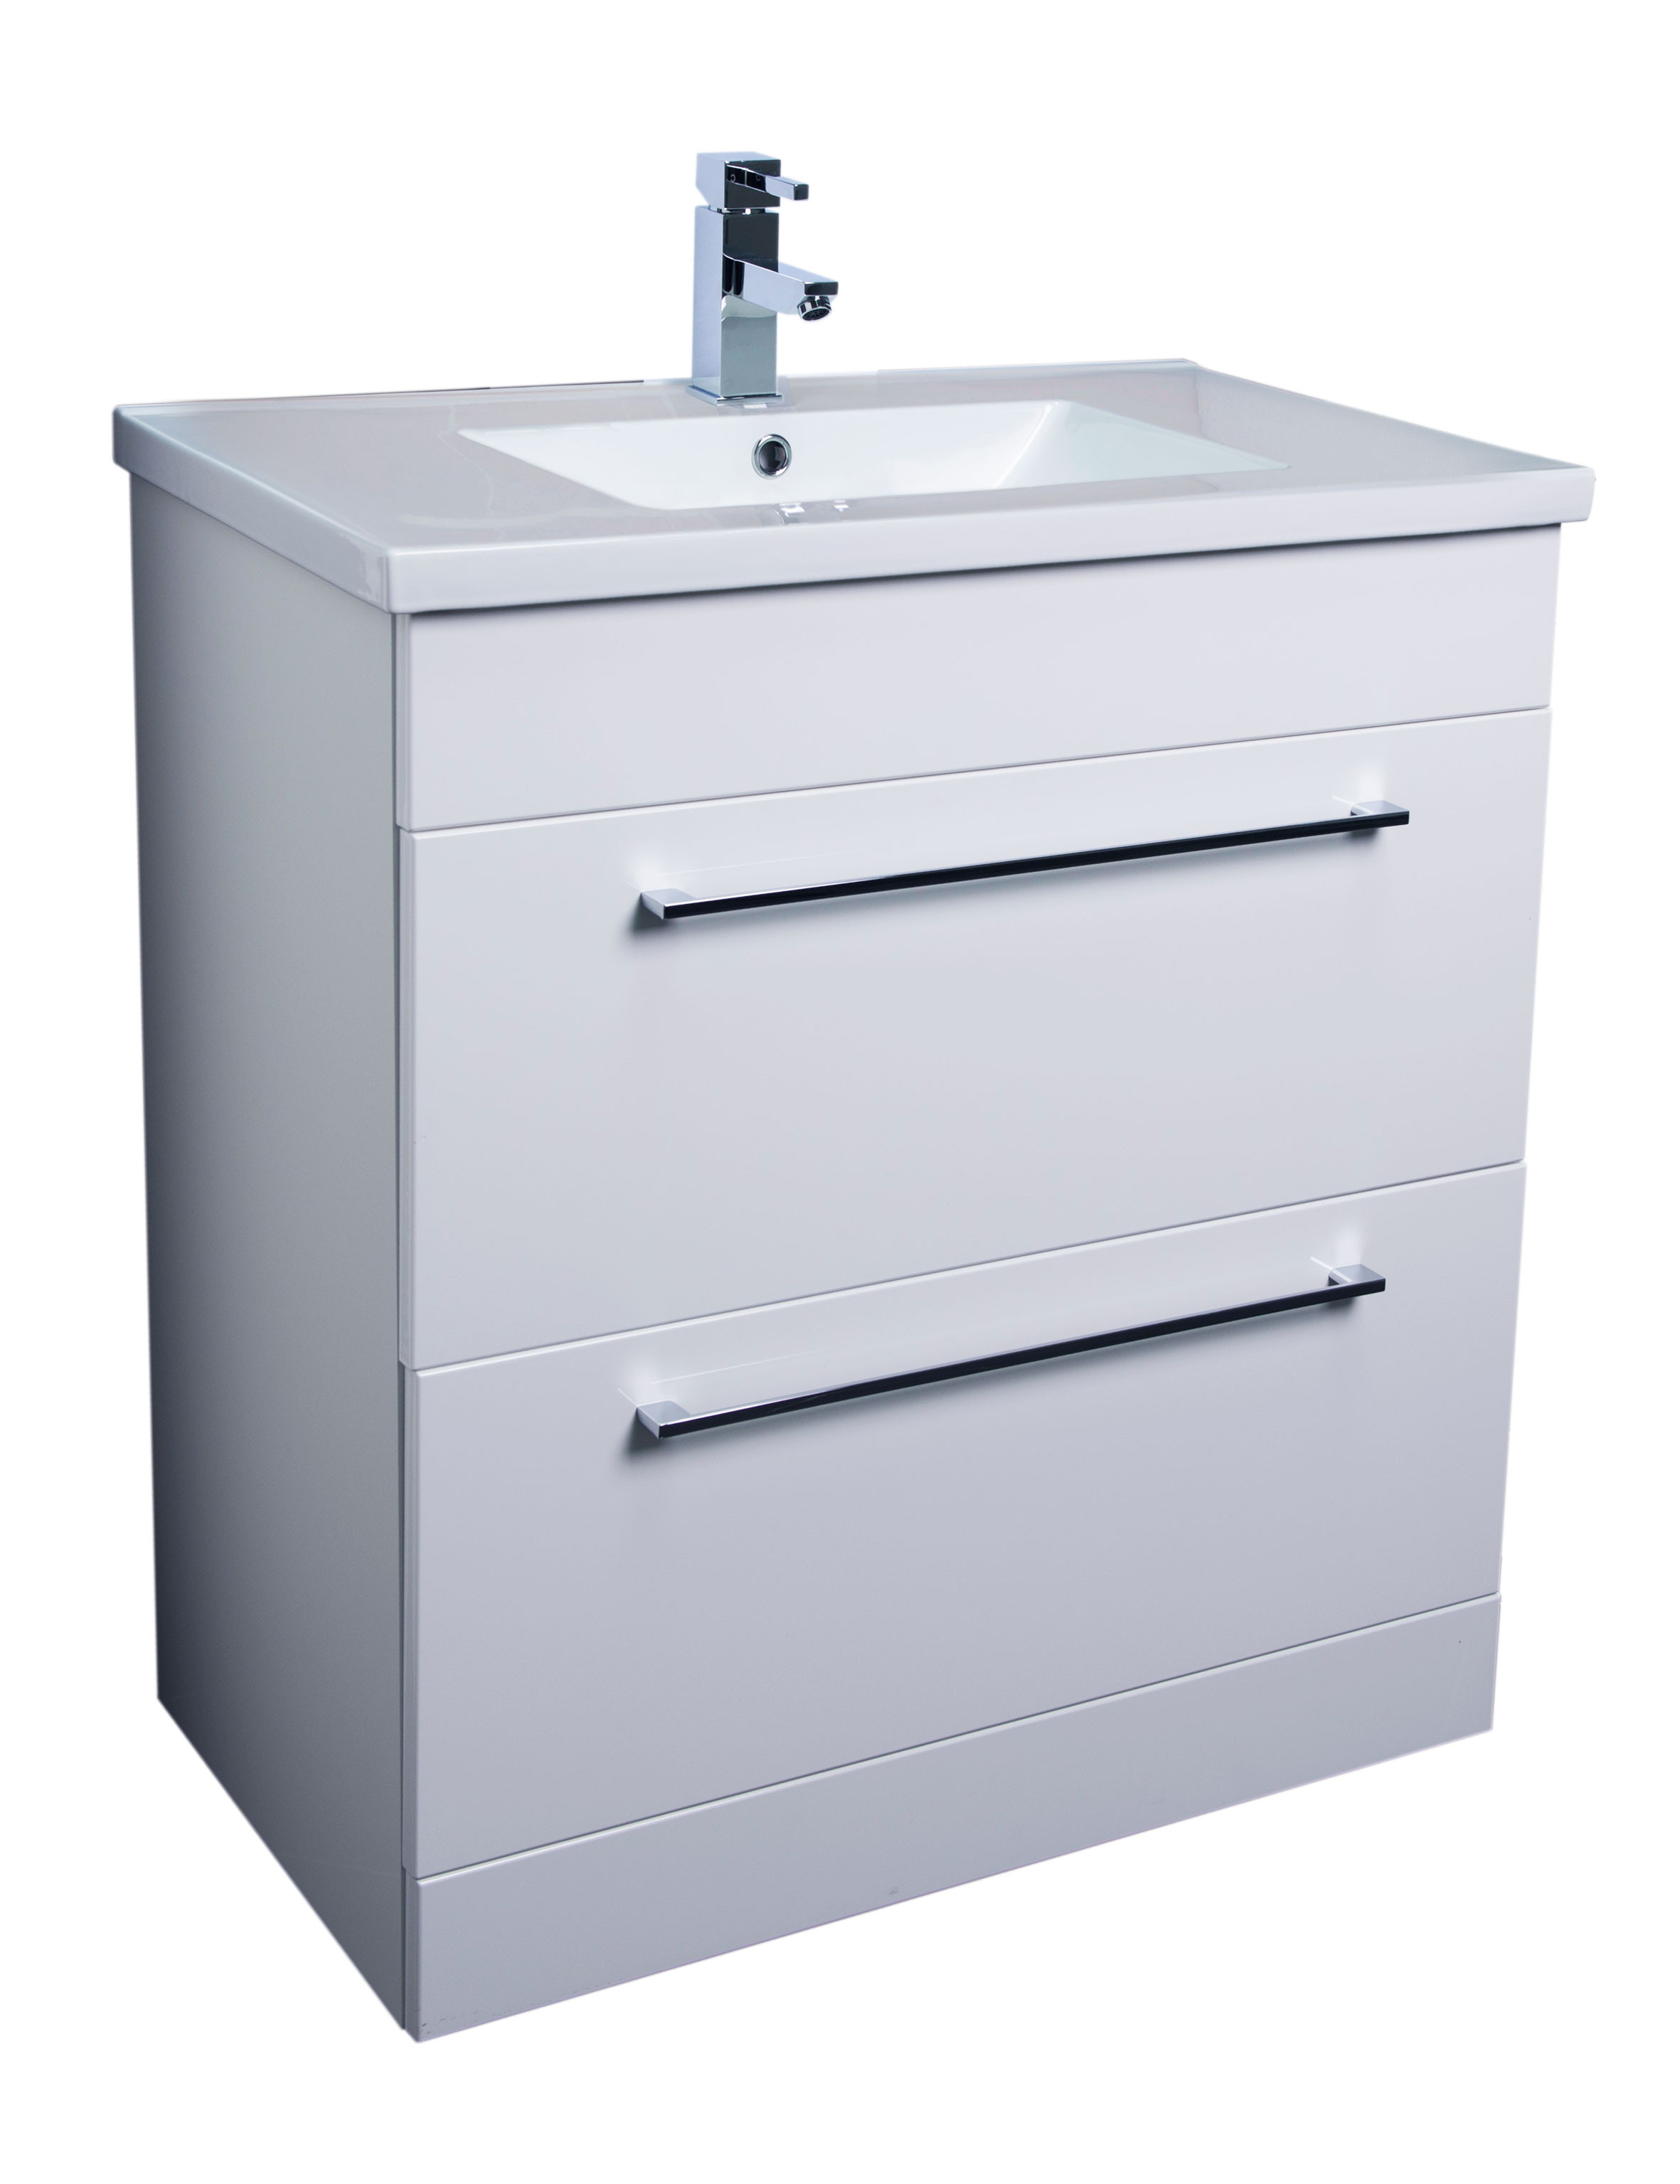 Napoli Gloss White 2 Drawer 800 Unit & Basin